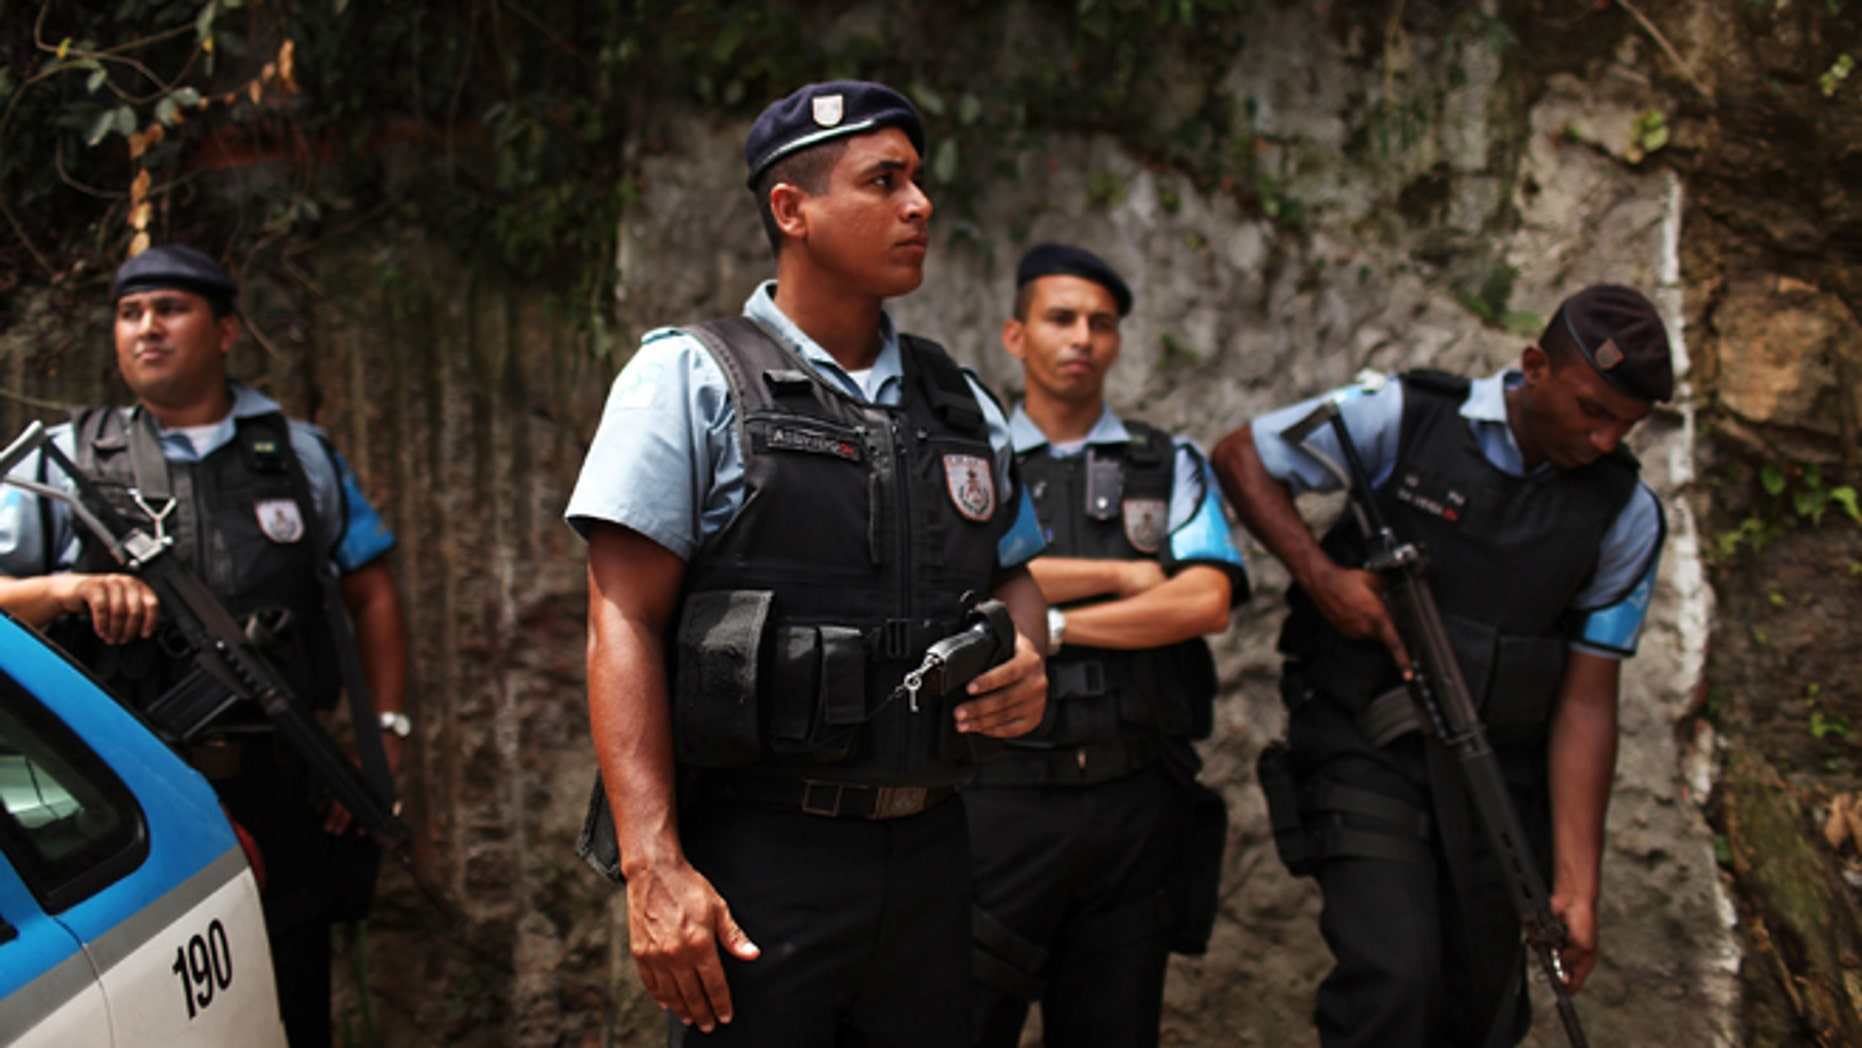 "RIO DE JANEIRO, BRAZIL - DECEMBER 03:  Police officers patrol the recently ""pacified"" Babilônia slum, or favela, on December 3, 2009 in Rio de Janeiro, Brazil. Babilônia is one of a number of Favelas in Rio where the police are attempting a softer touch by participating in community policing after they clear the area of drug gangs. It is believed that the police want to continue with these programs citywide ahead of the 2016 Olympic Games. As Brazil prepares to host the 2016 Summer Olympics international scrutiny is falling on Rio de Janeiro`s favelas where over 5,000 people were murdered  last year alone. In the last week violence in tourist areas has increased as drug gangs are increasingly reacting to an increased police presence in the favelas. In figures released Tuesday by the IBGE (Instituto Brasileiro de Geografia e Estatística) statistics agency it was found that an average of 68 young Brazilian men died violently each day between 1998 and 2008. These numbers included murder, traffic accidents and gang violence involving the police.  (Photo by Spencer Platt/Getty Images)"